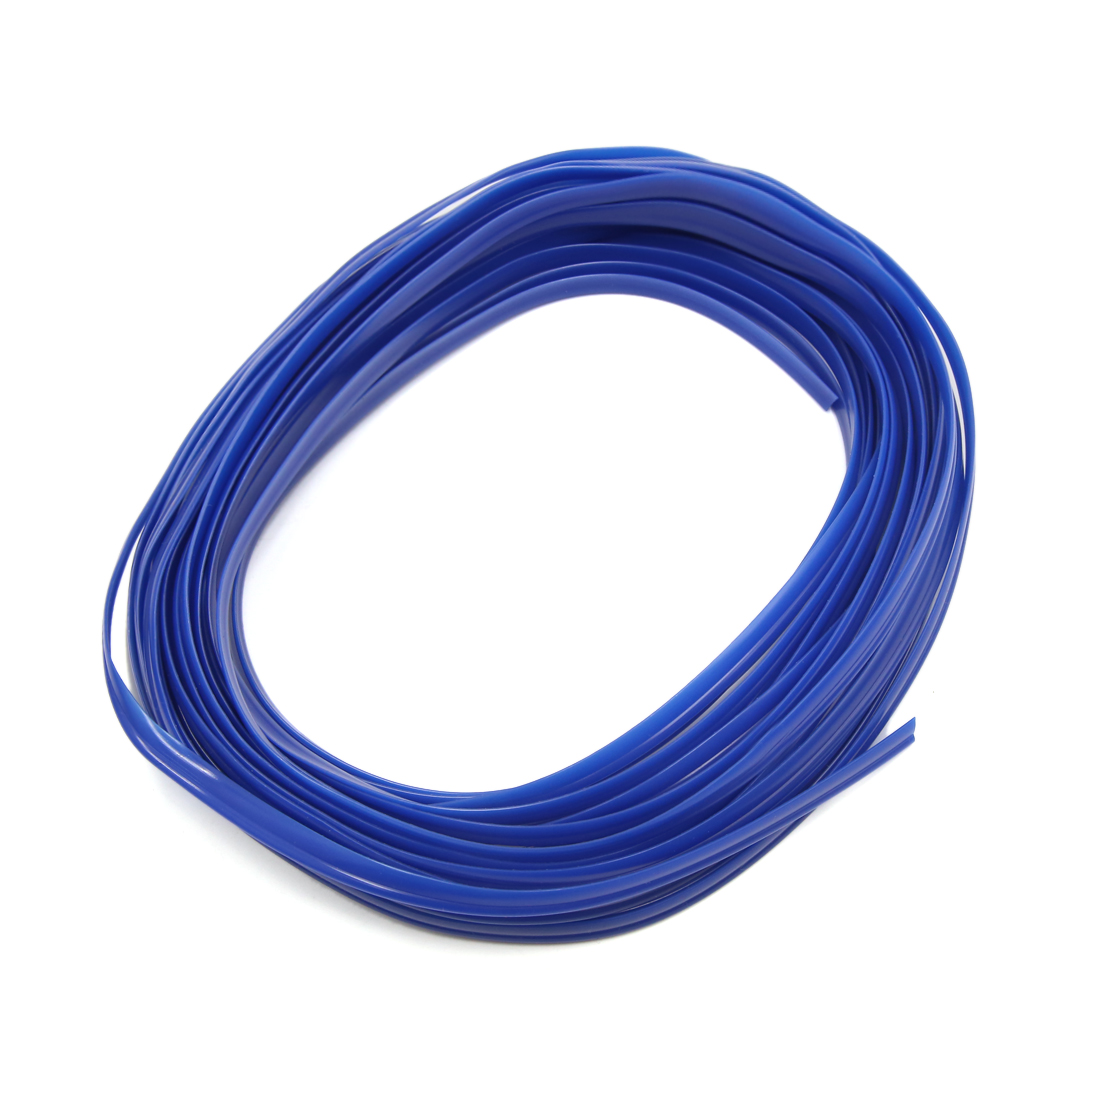 Blue Car Grille Interior Exterior Decoration Moulding Trim Strip Line 10M Lenght